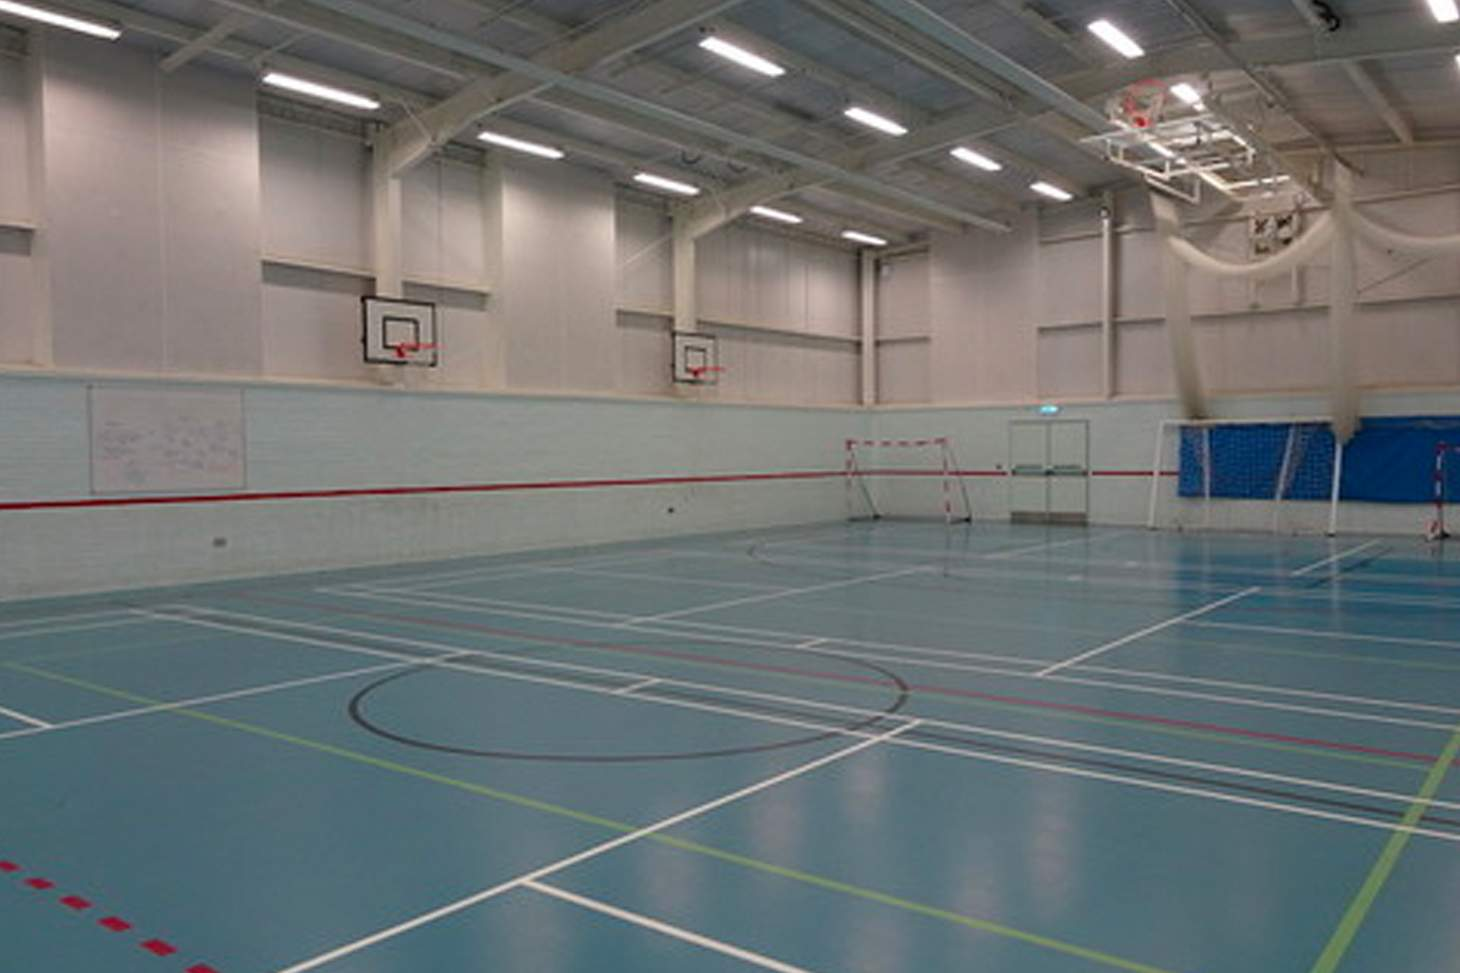 Wilmington Grammar School for Boys Nets | Sports hall cricket facilities